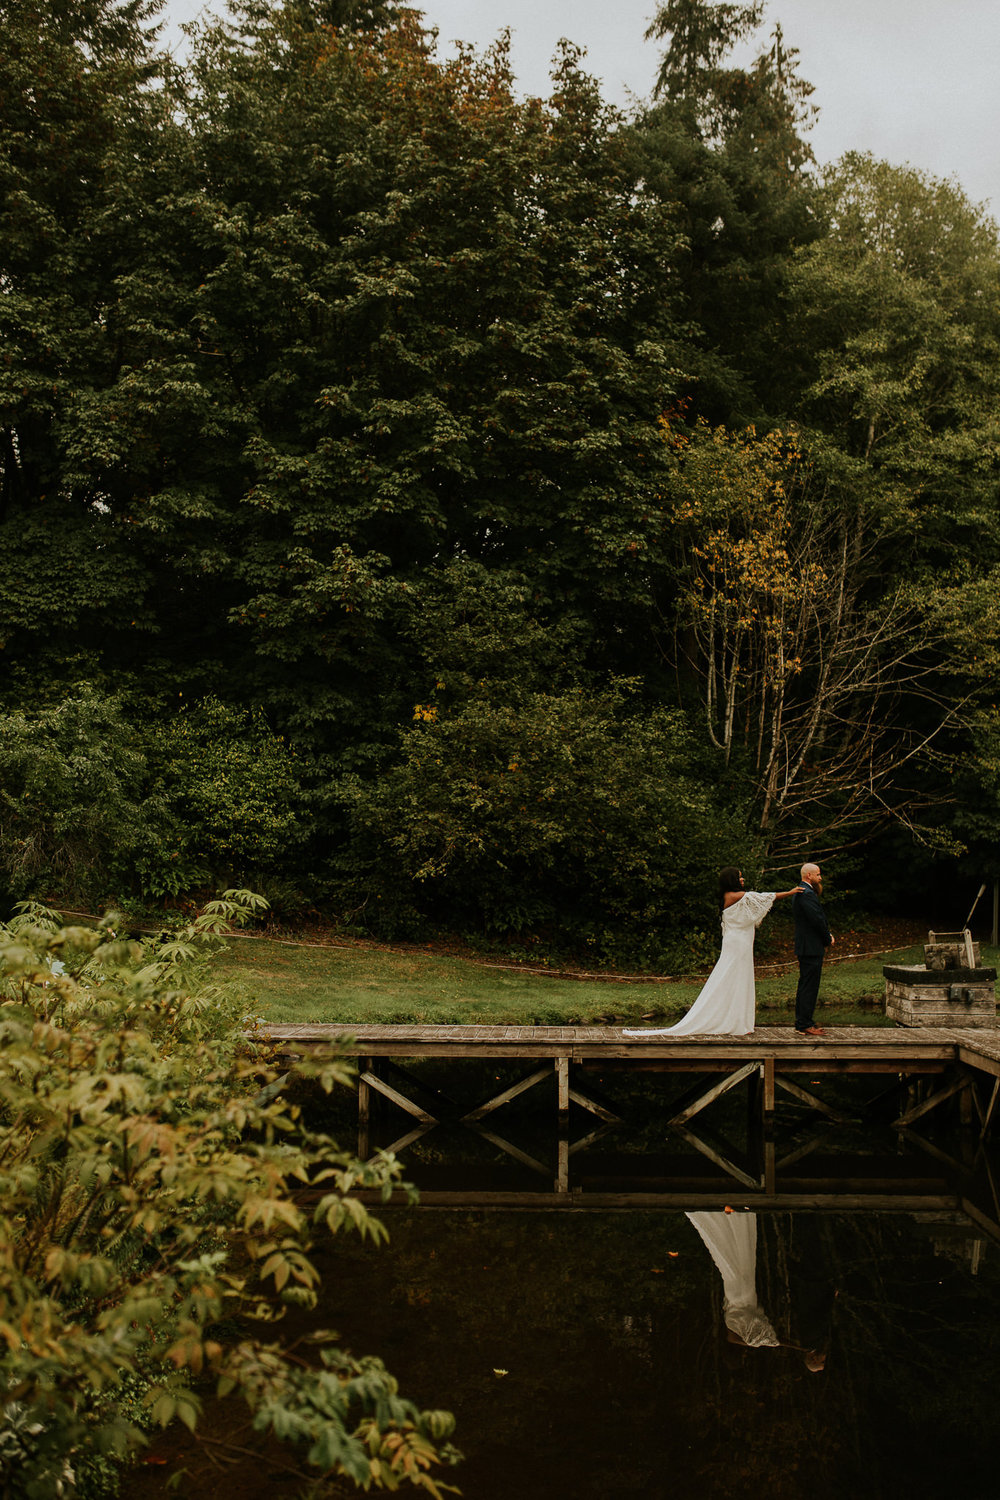 Lakeside-elopement-teasers-7.jpg